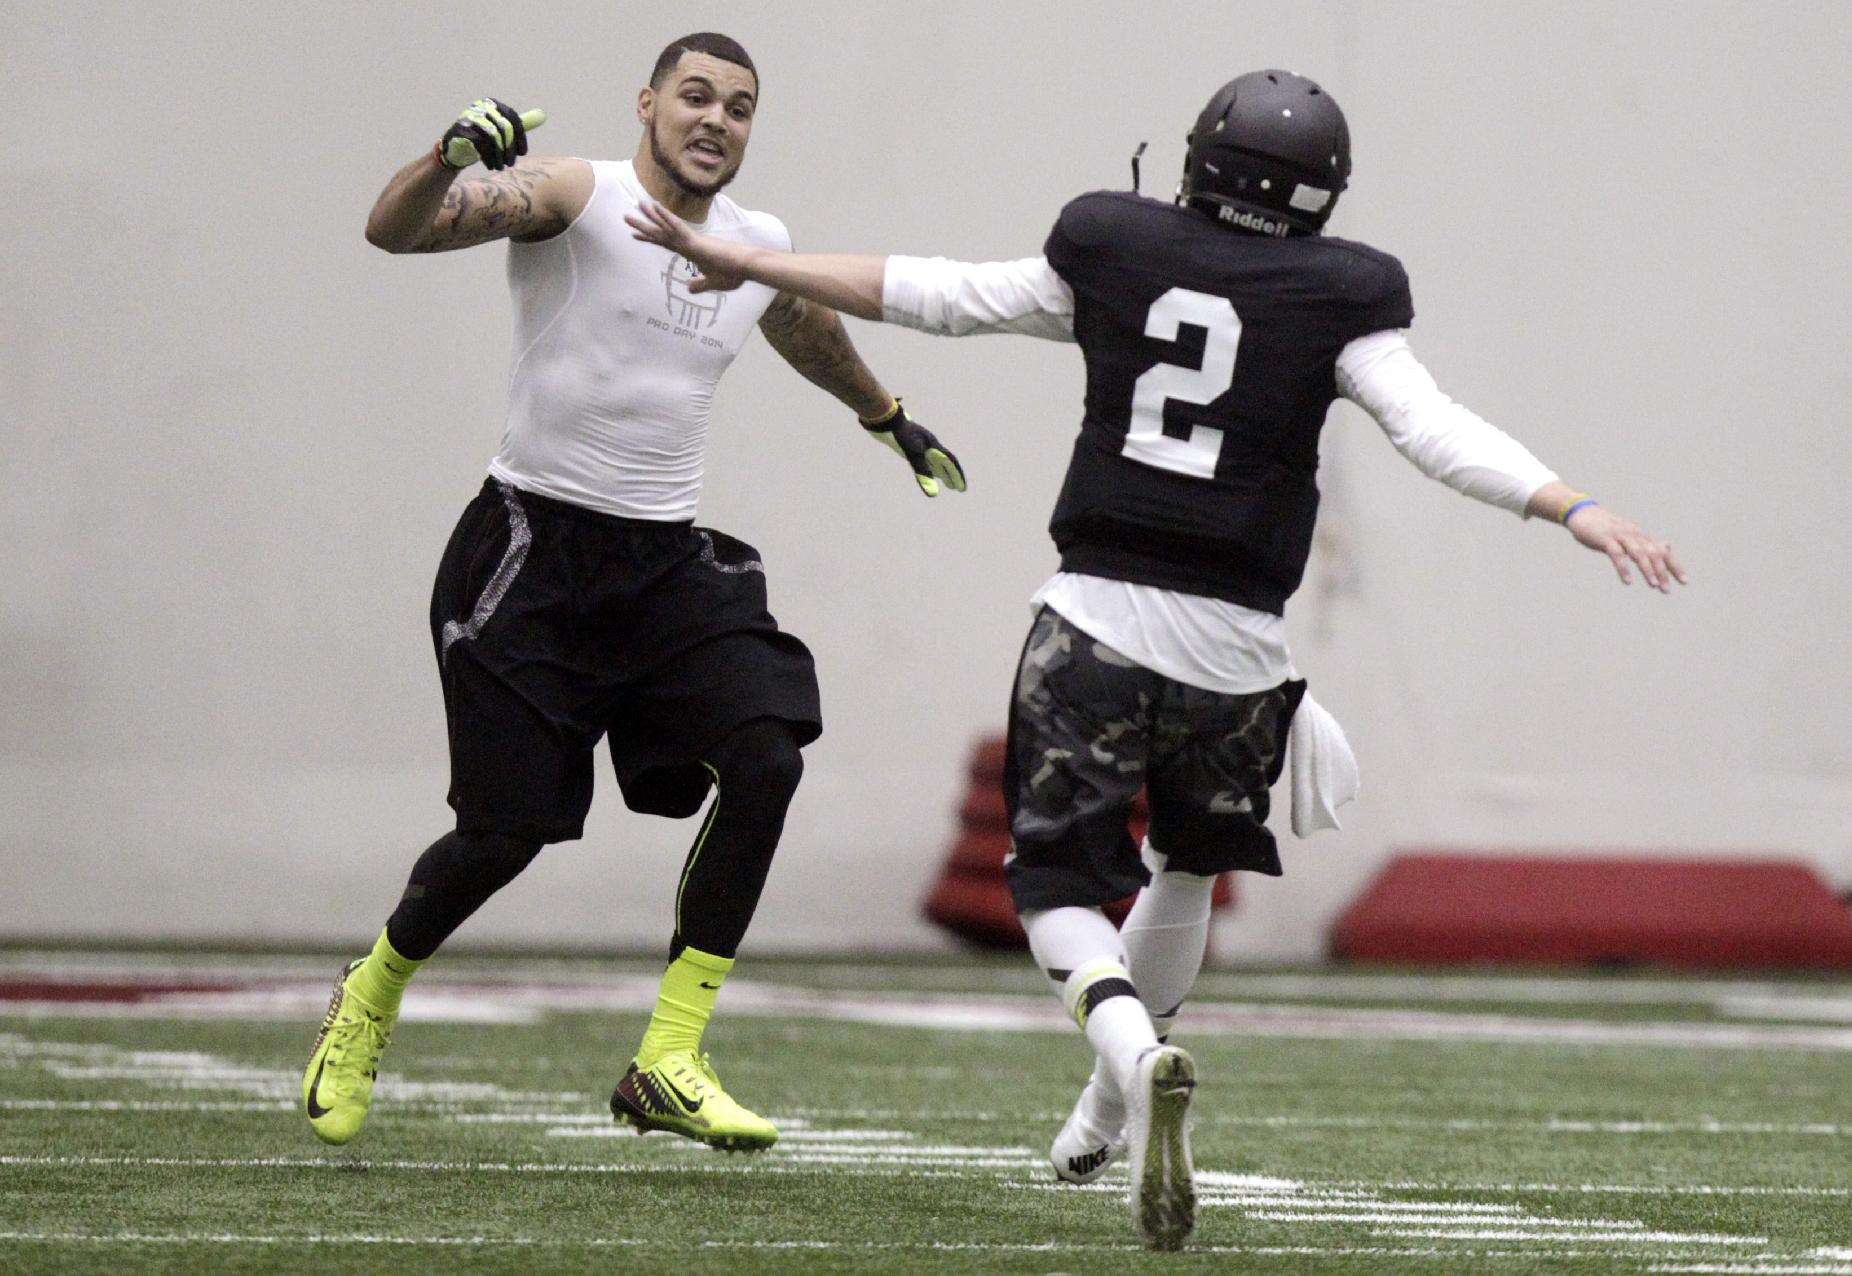 Texas A&M quarterback Johnny Manziel (2) and wide receiver Mike Evans celebrate after a pass reception during a drill at pro day for NFL football representativesin College Station, Texas, Thursday, March 27, 2014